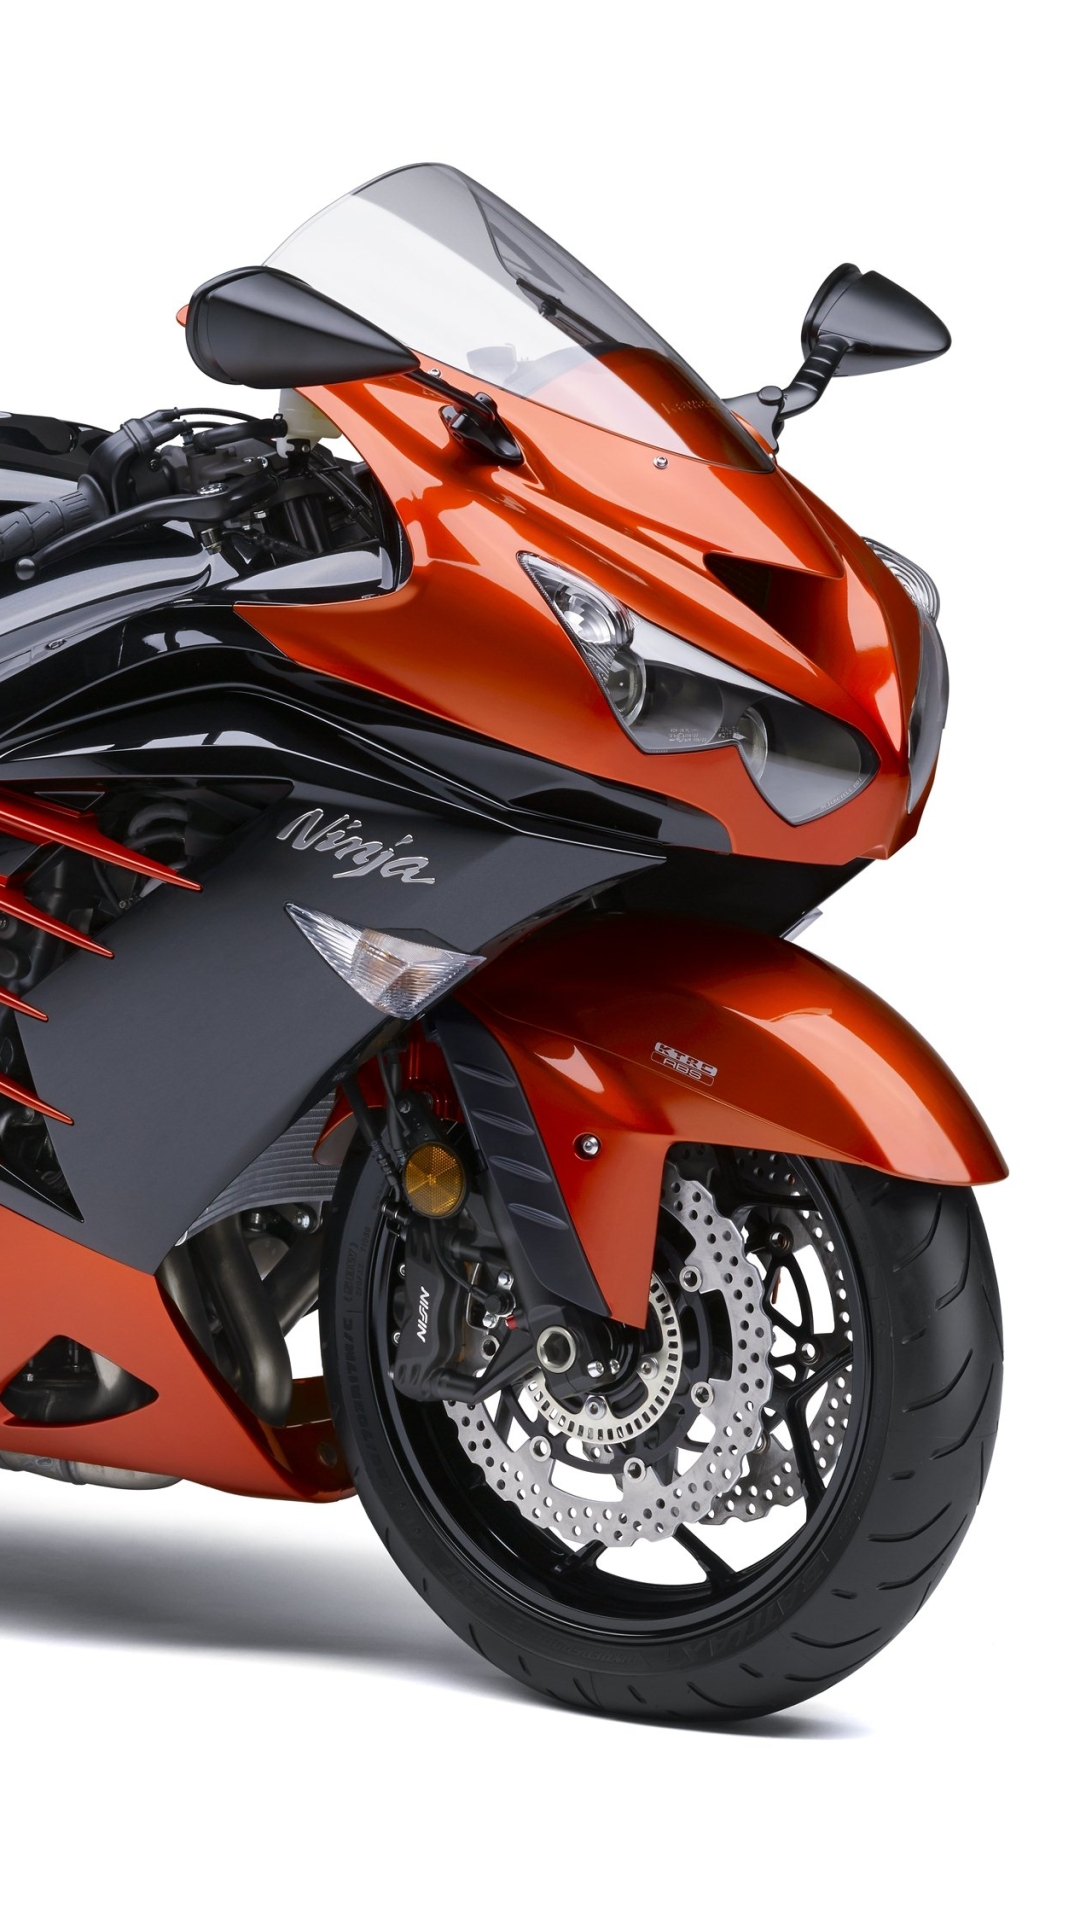 vehicles/kawasaki ninja (1080x1920) wallpaper id: 709487 - mobile abyss